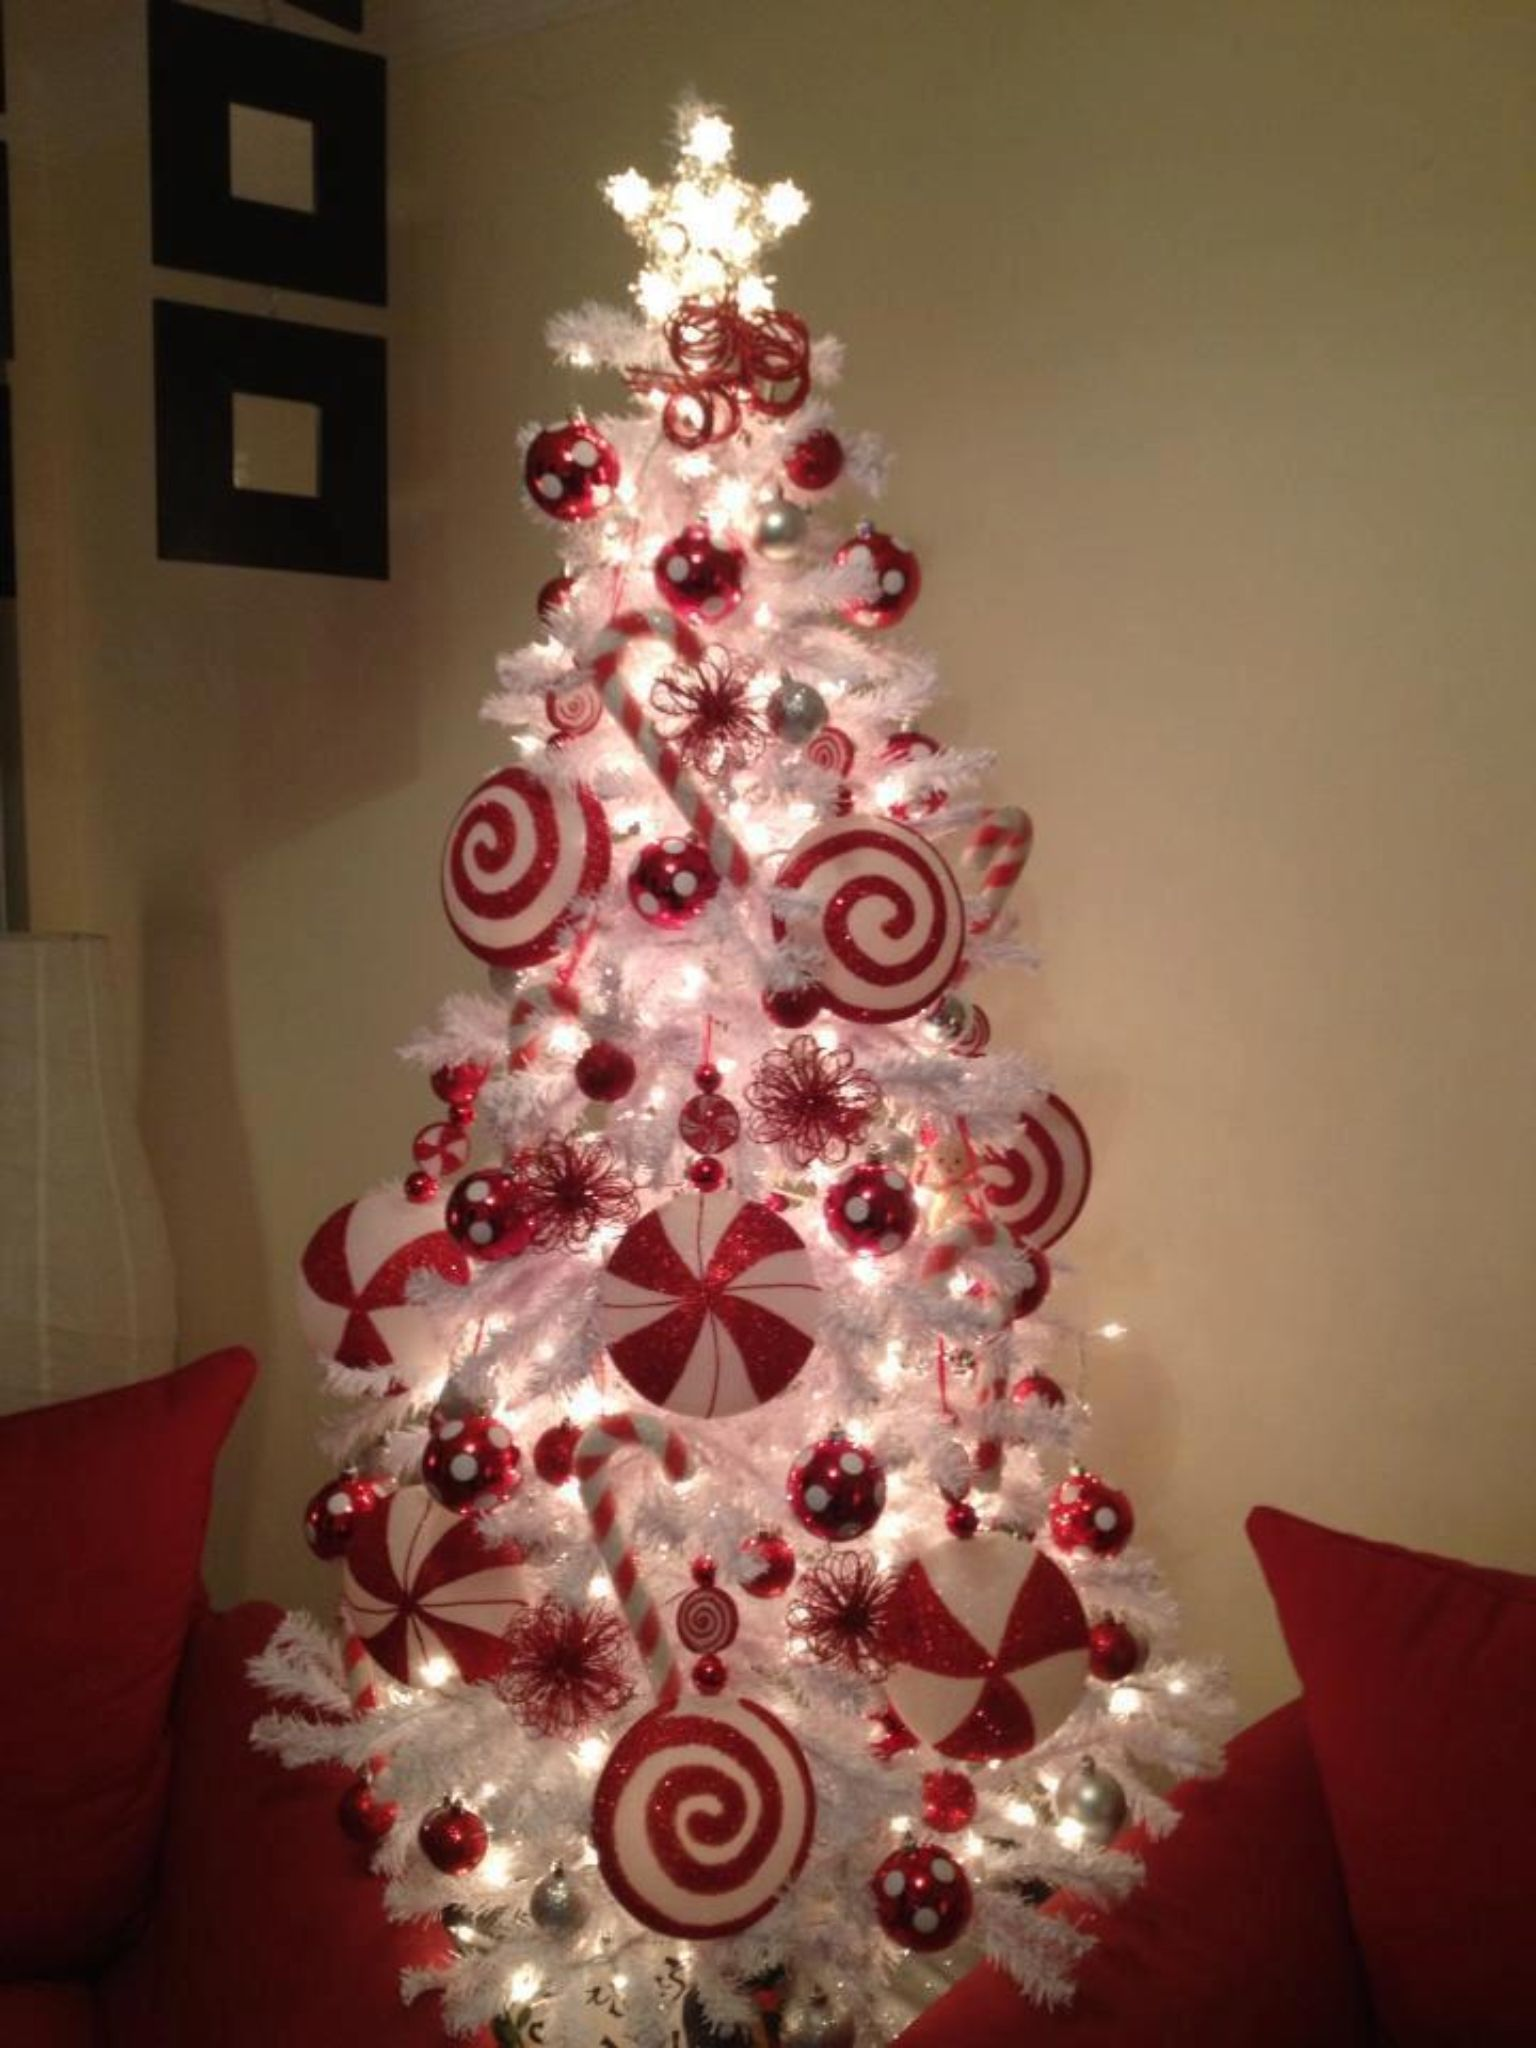 Candy cane theme Christmas Tree (With images) Christmas